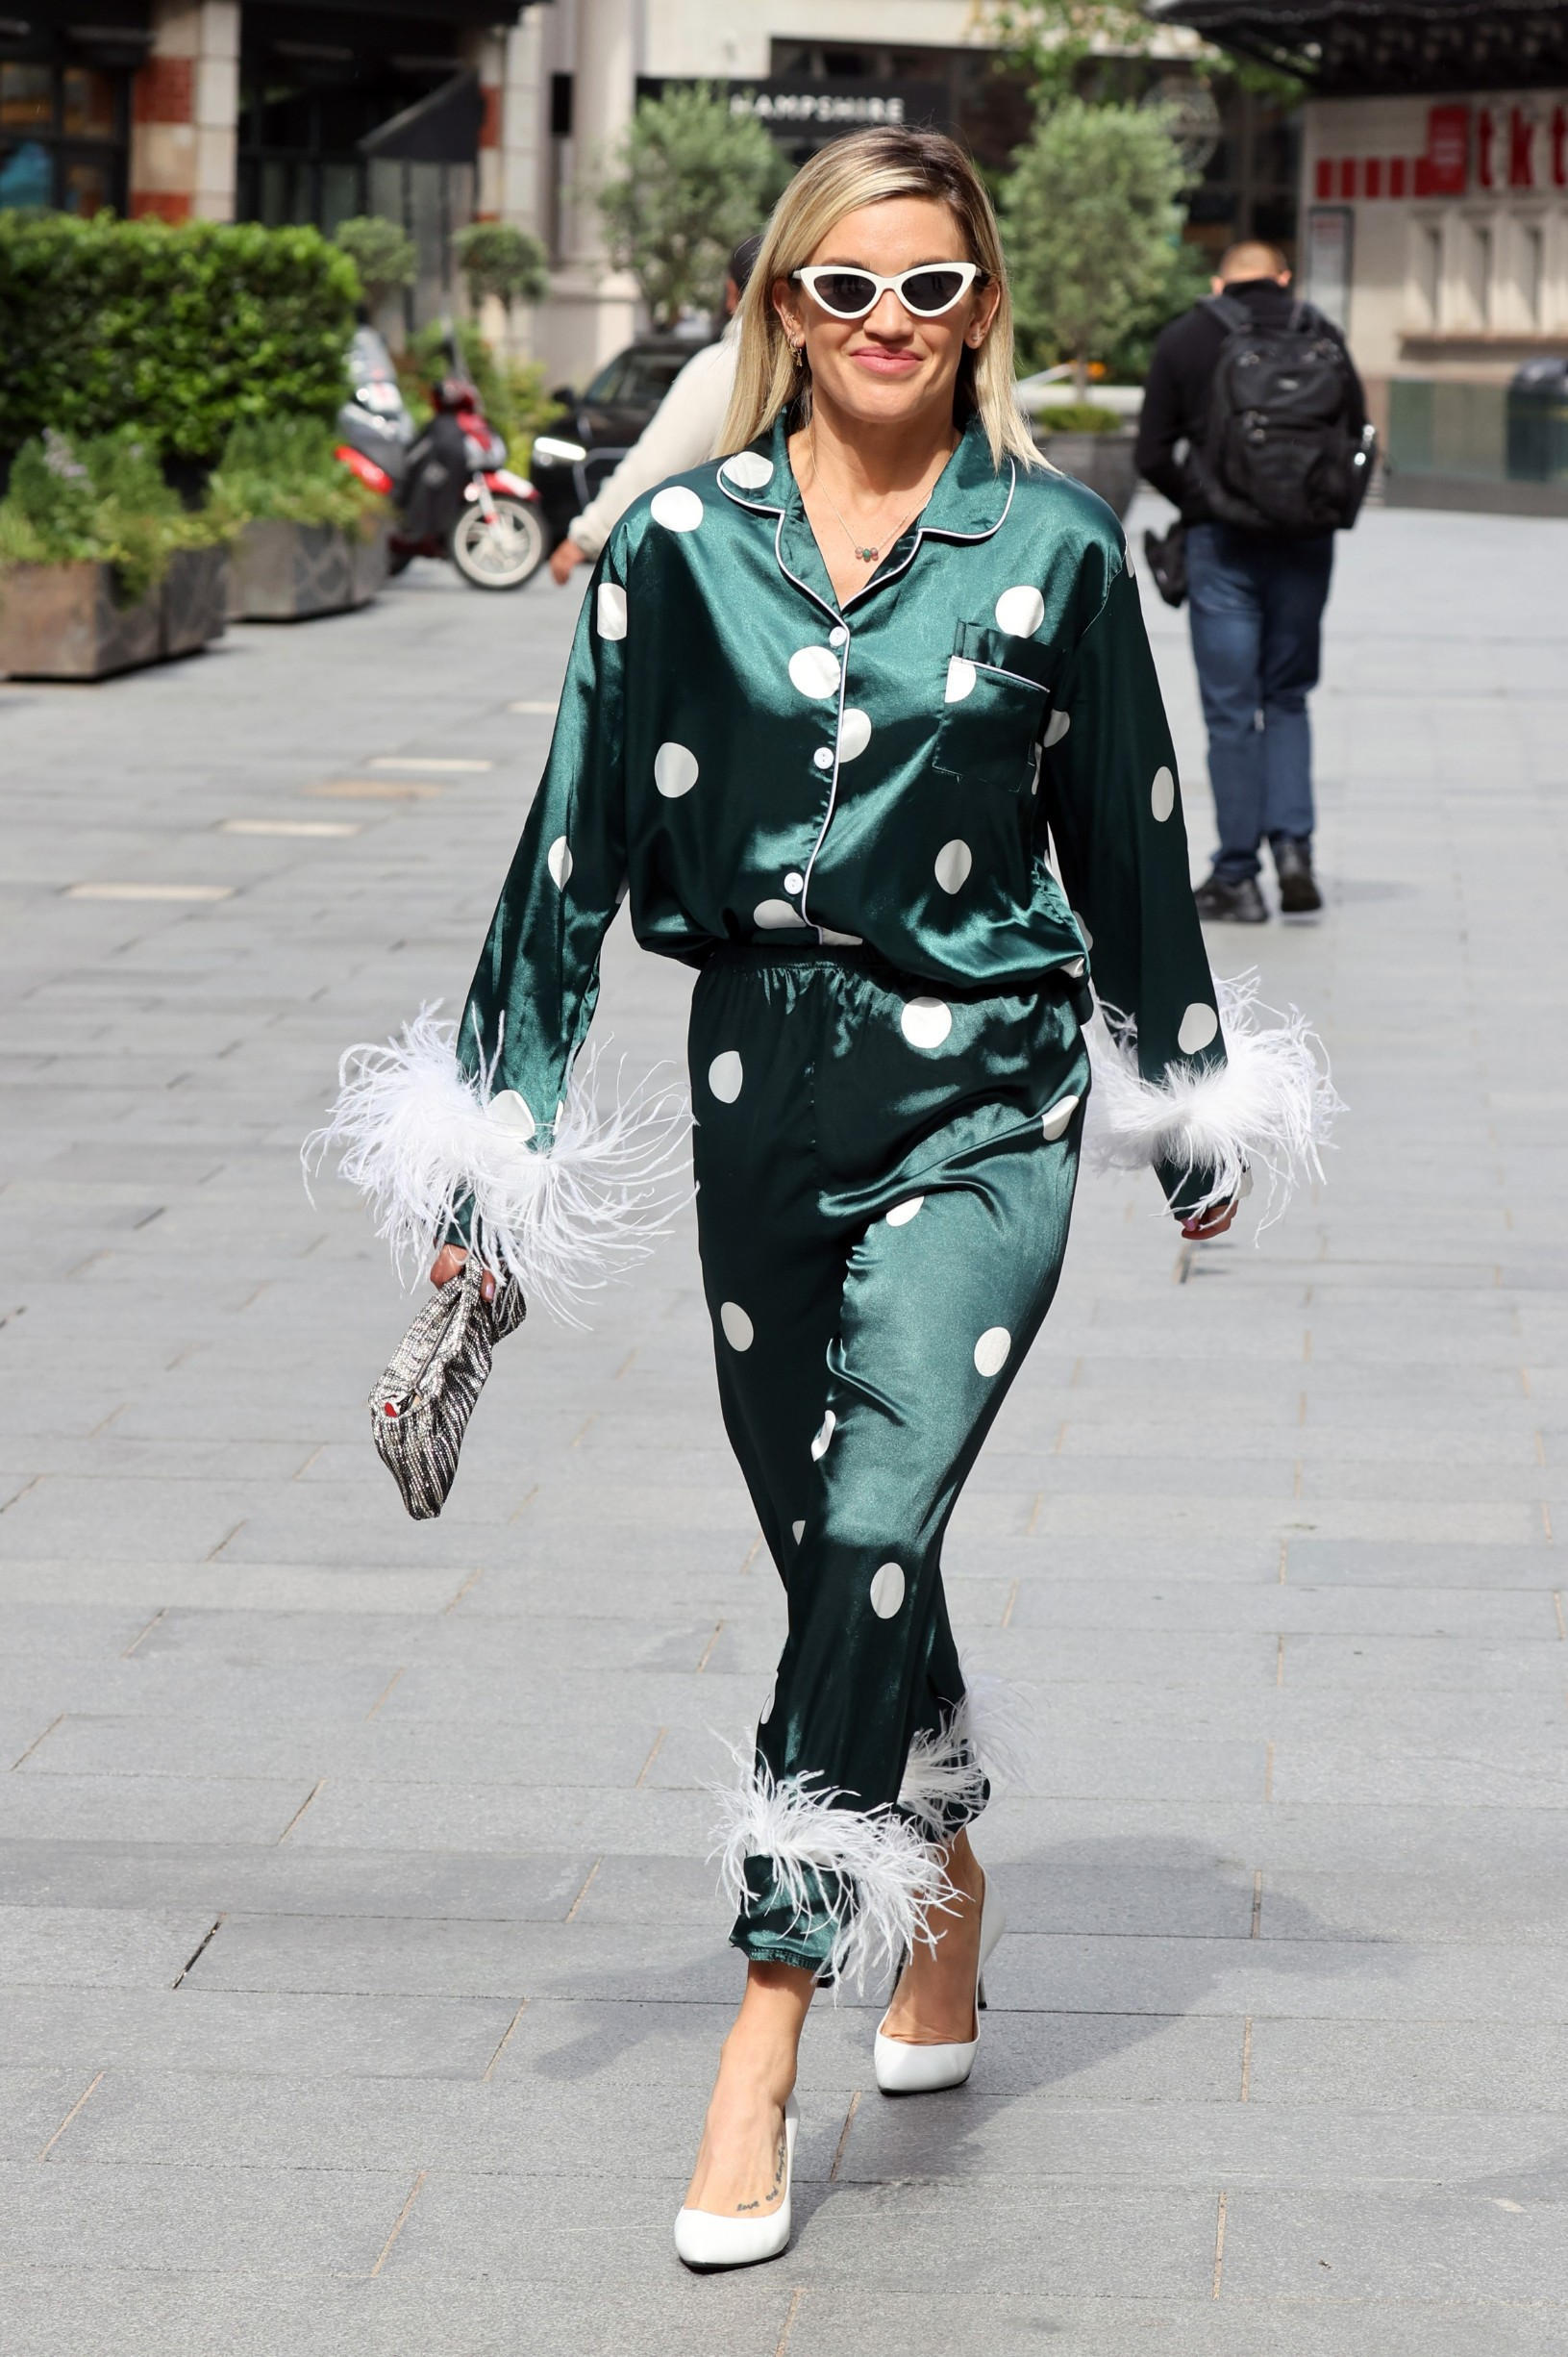 Ashley Roberts Ashley Roberts out and about, London, UK - 19 Jun 2020,Image: 533431698, License: Rights-managed, Restrictions: , Model Release: no, Credit line: Beretta/Sims / Shutterstock Editorial / Profimedia